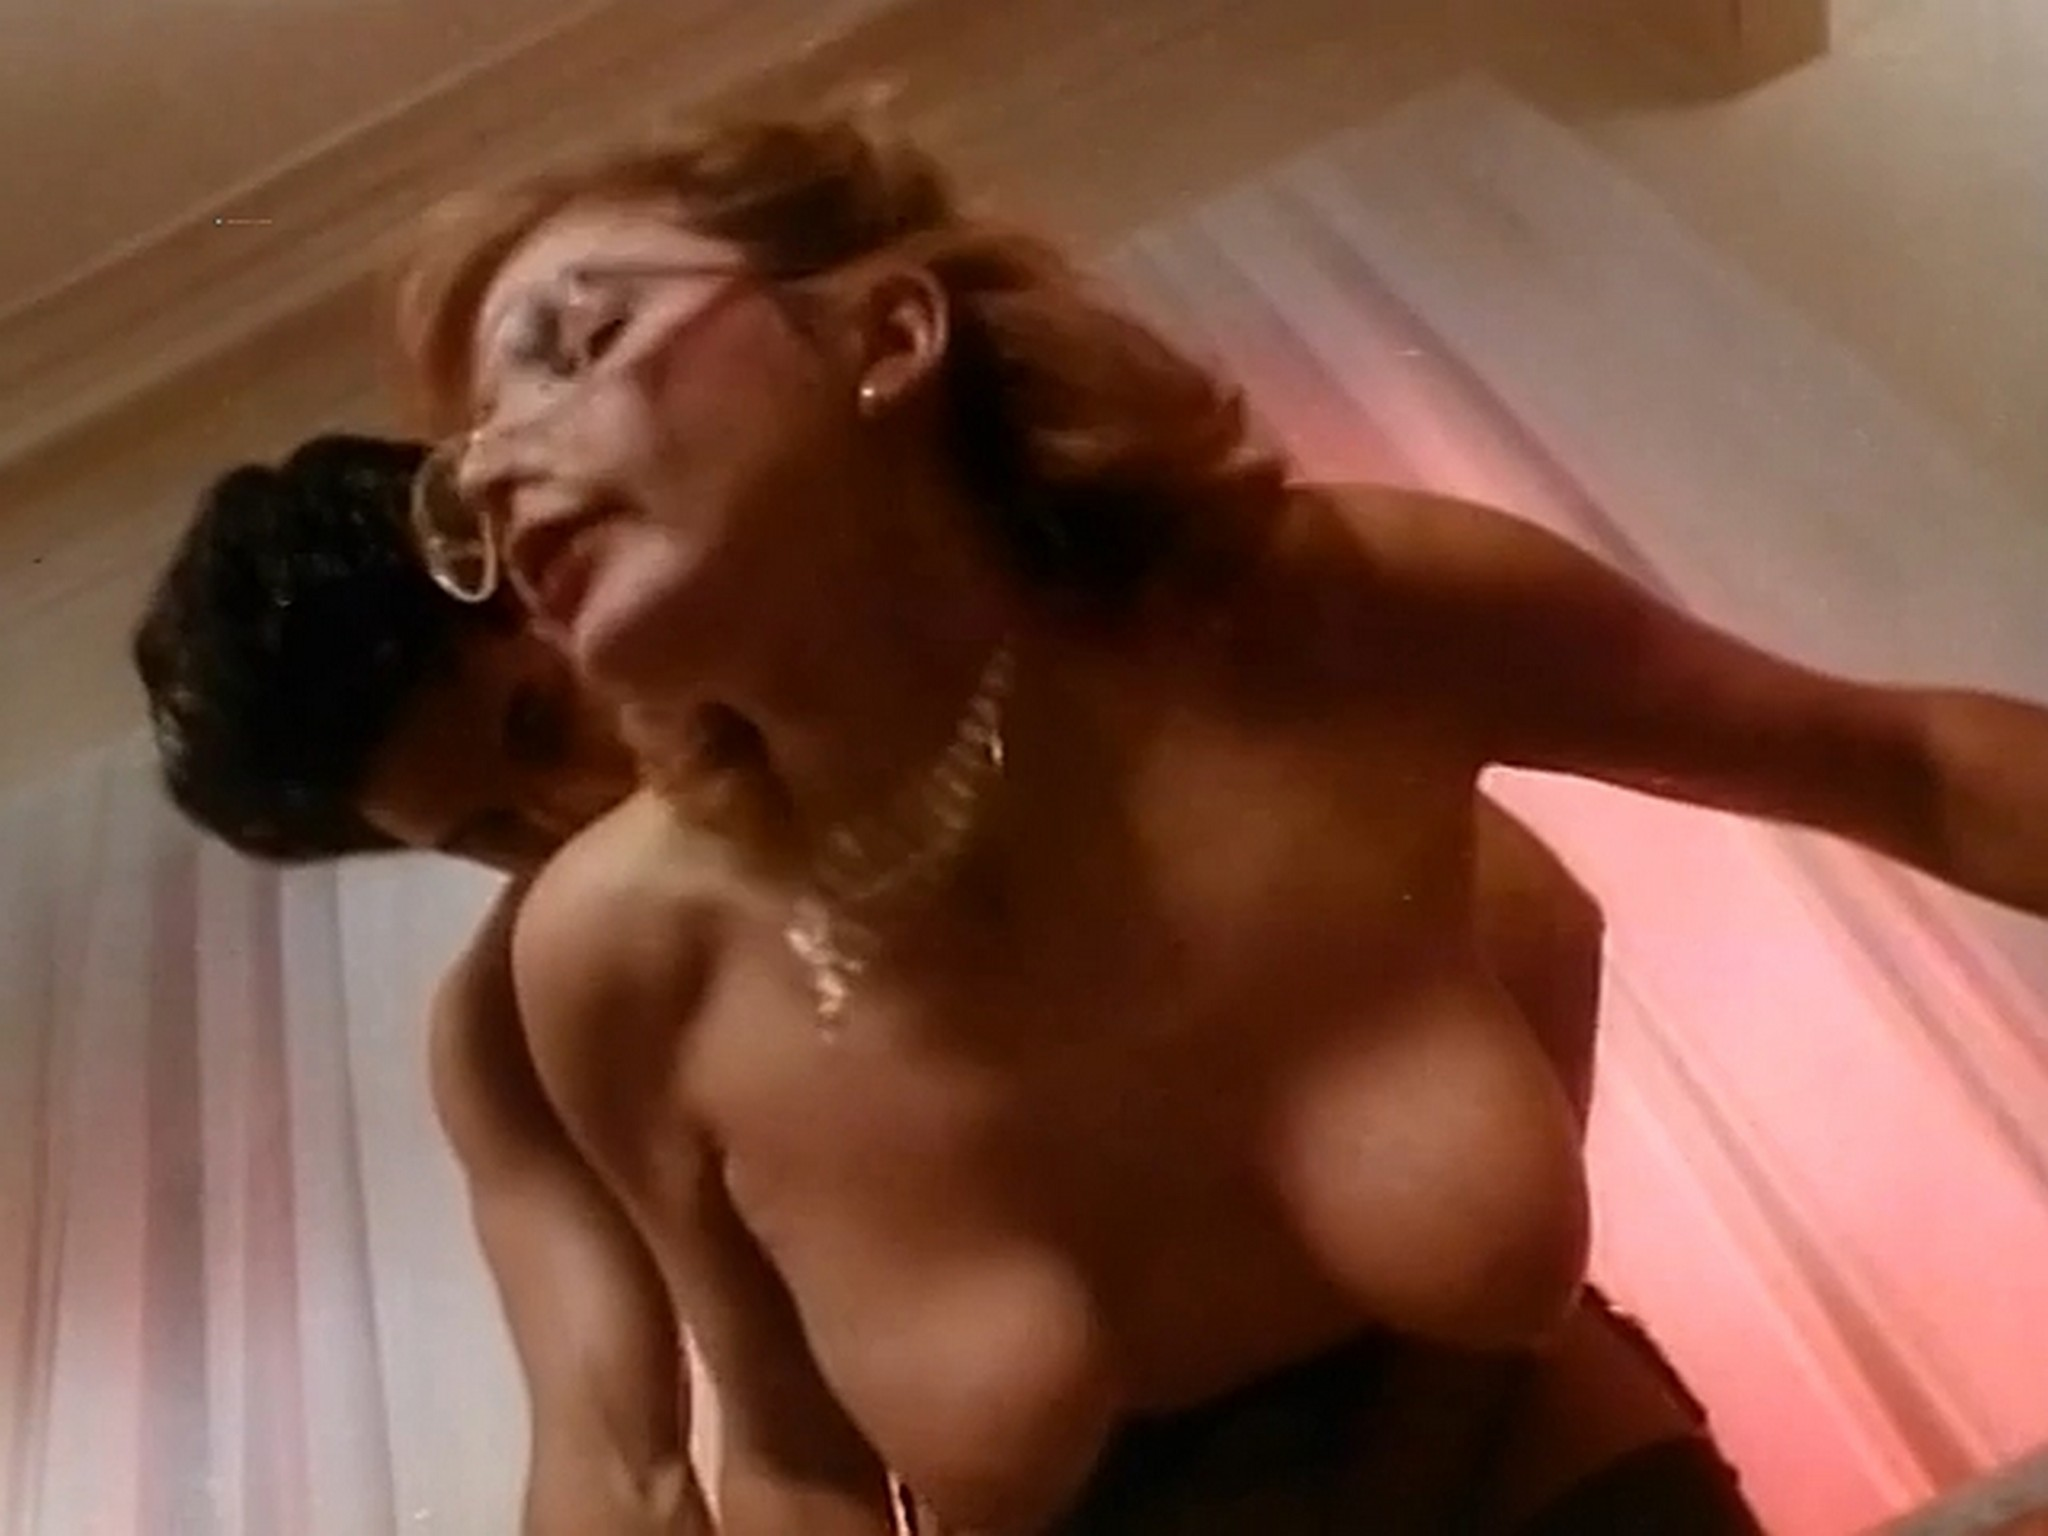 Lydie Denier nude sex Eva Czemerys and others nude too Flesh and Fire 1985 DVDRip 3